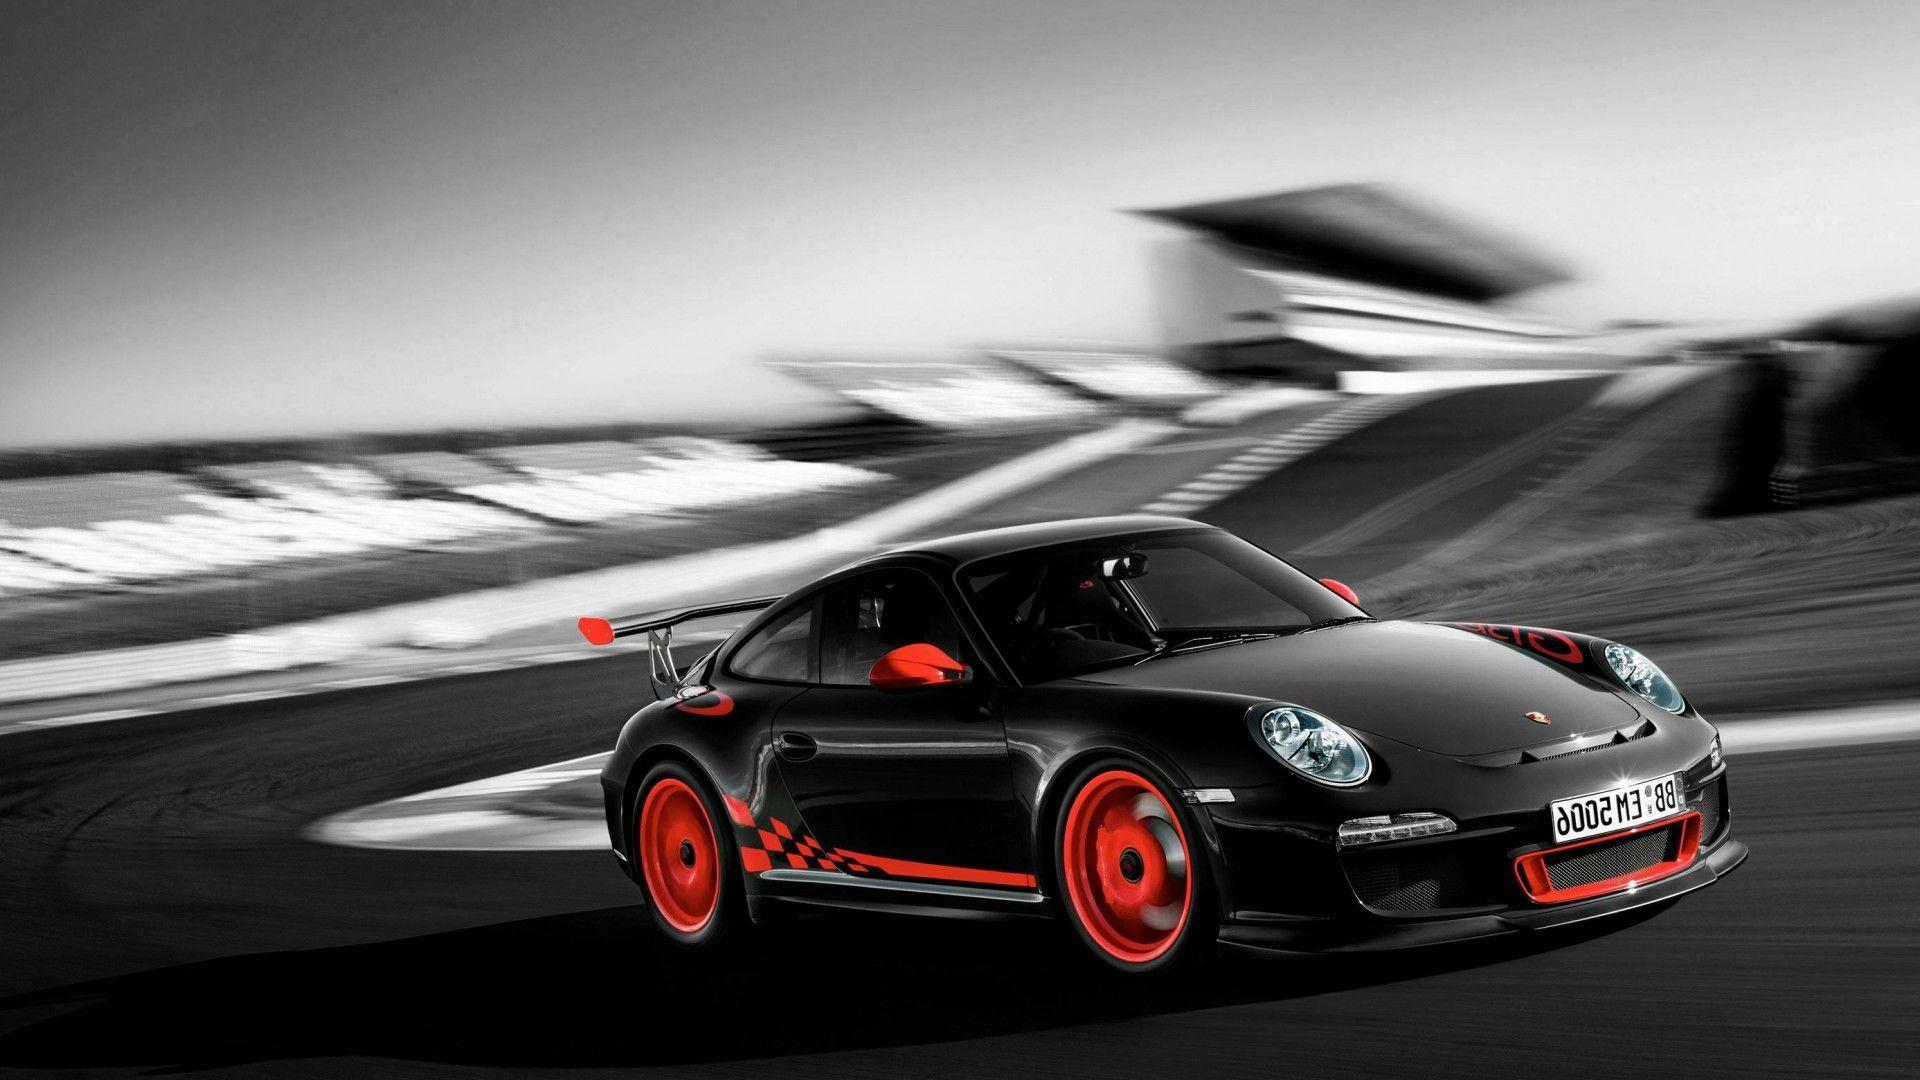 porsche wallpapers - wallpaper cave